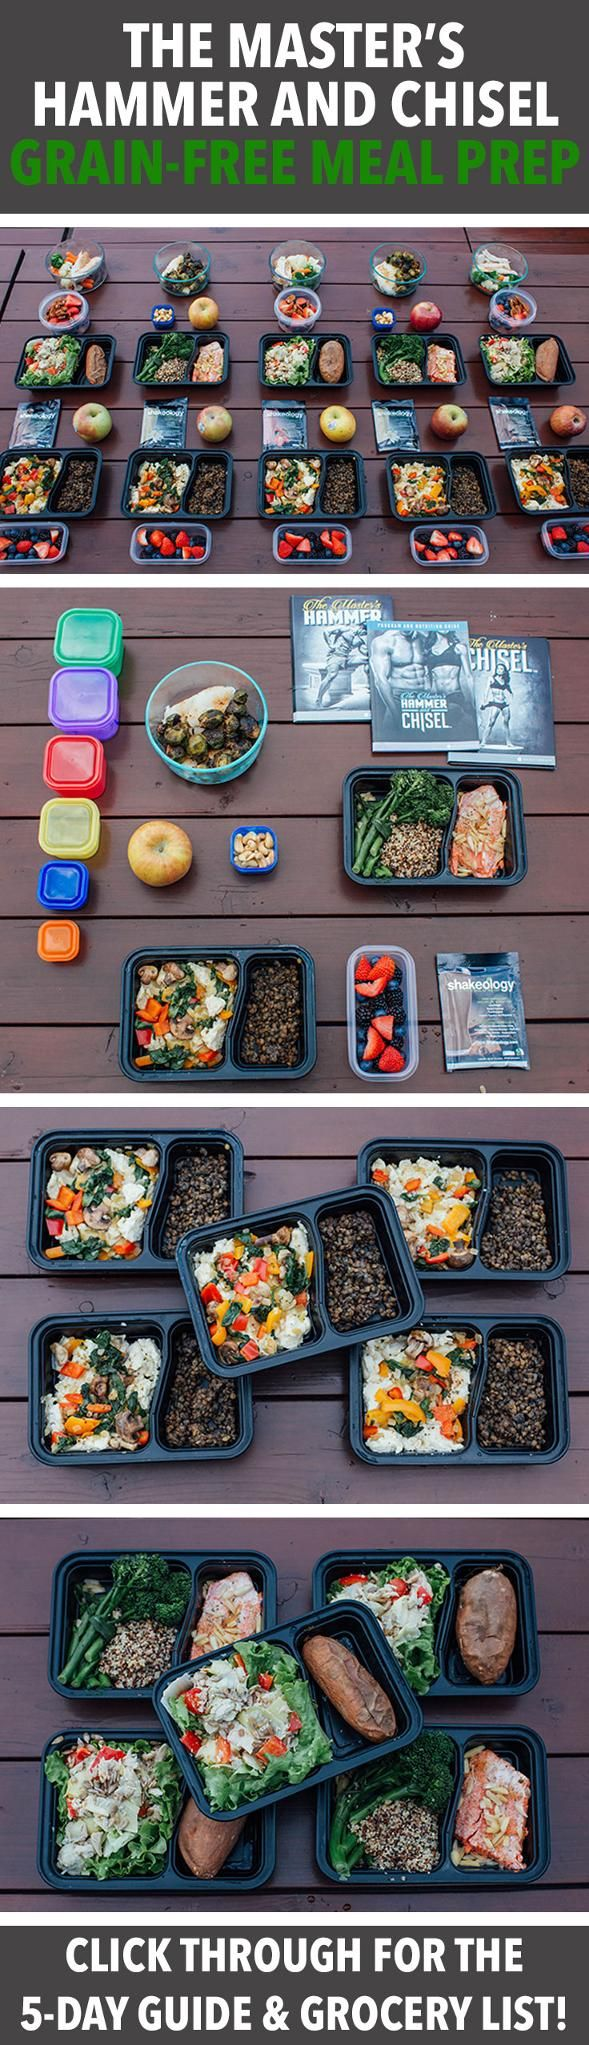 The Master's Hammer and Chisel Grain-Free Meal Prep -- This week's meal prep is inspired by the grain-free menu within the Master's Hammer & Chisel nutrition guide. This plan falls into the 1,500-1,799 calorie range. // meal prep monday // nutrition // healthy eating // eat clean // beachbody // beachbody blog